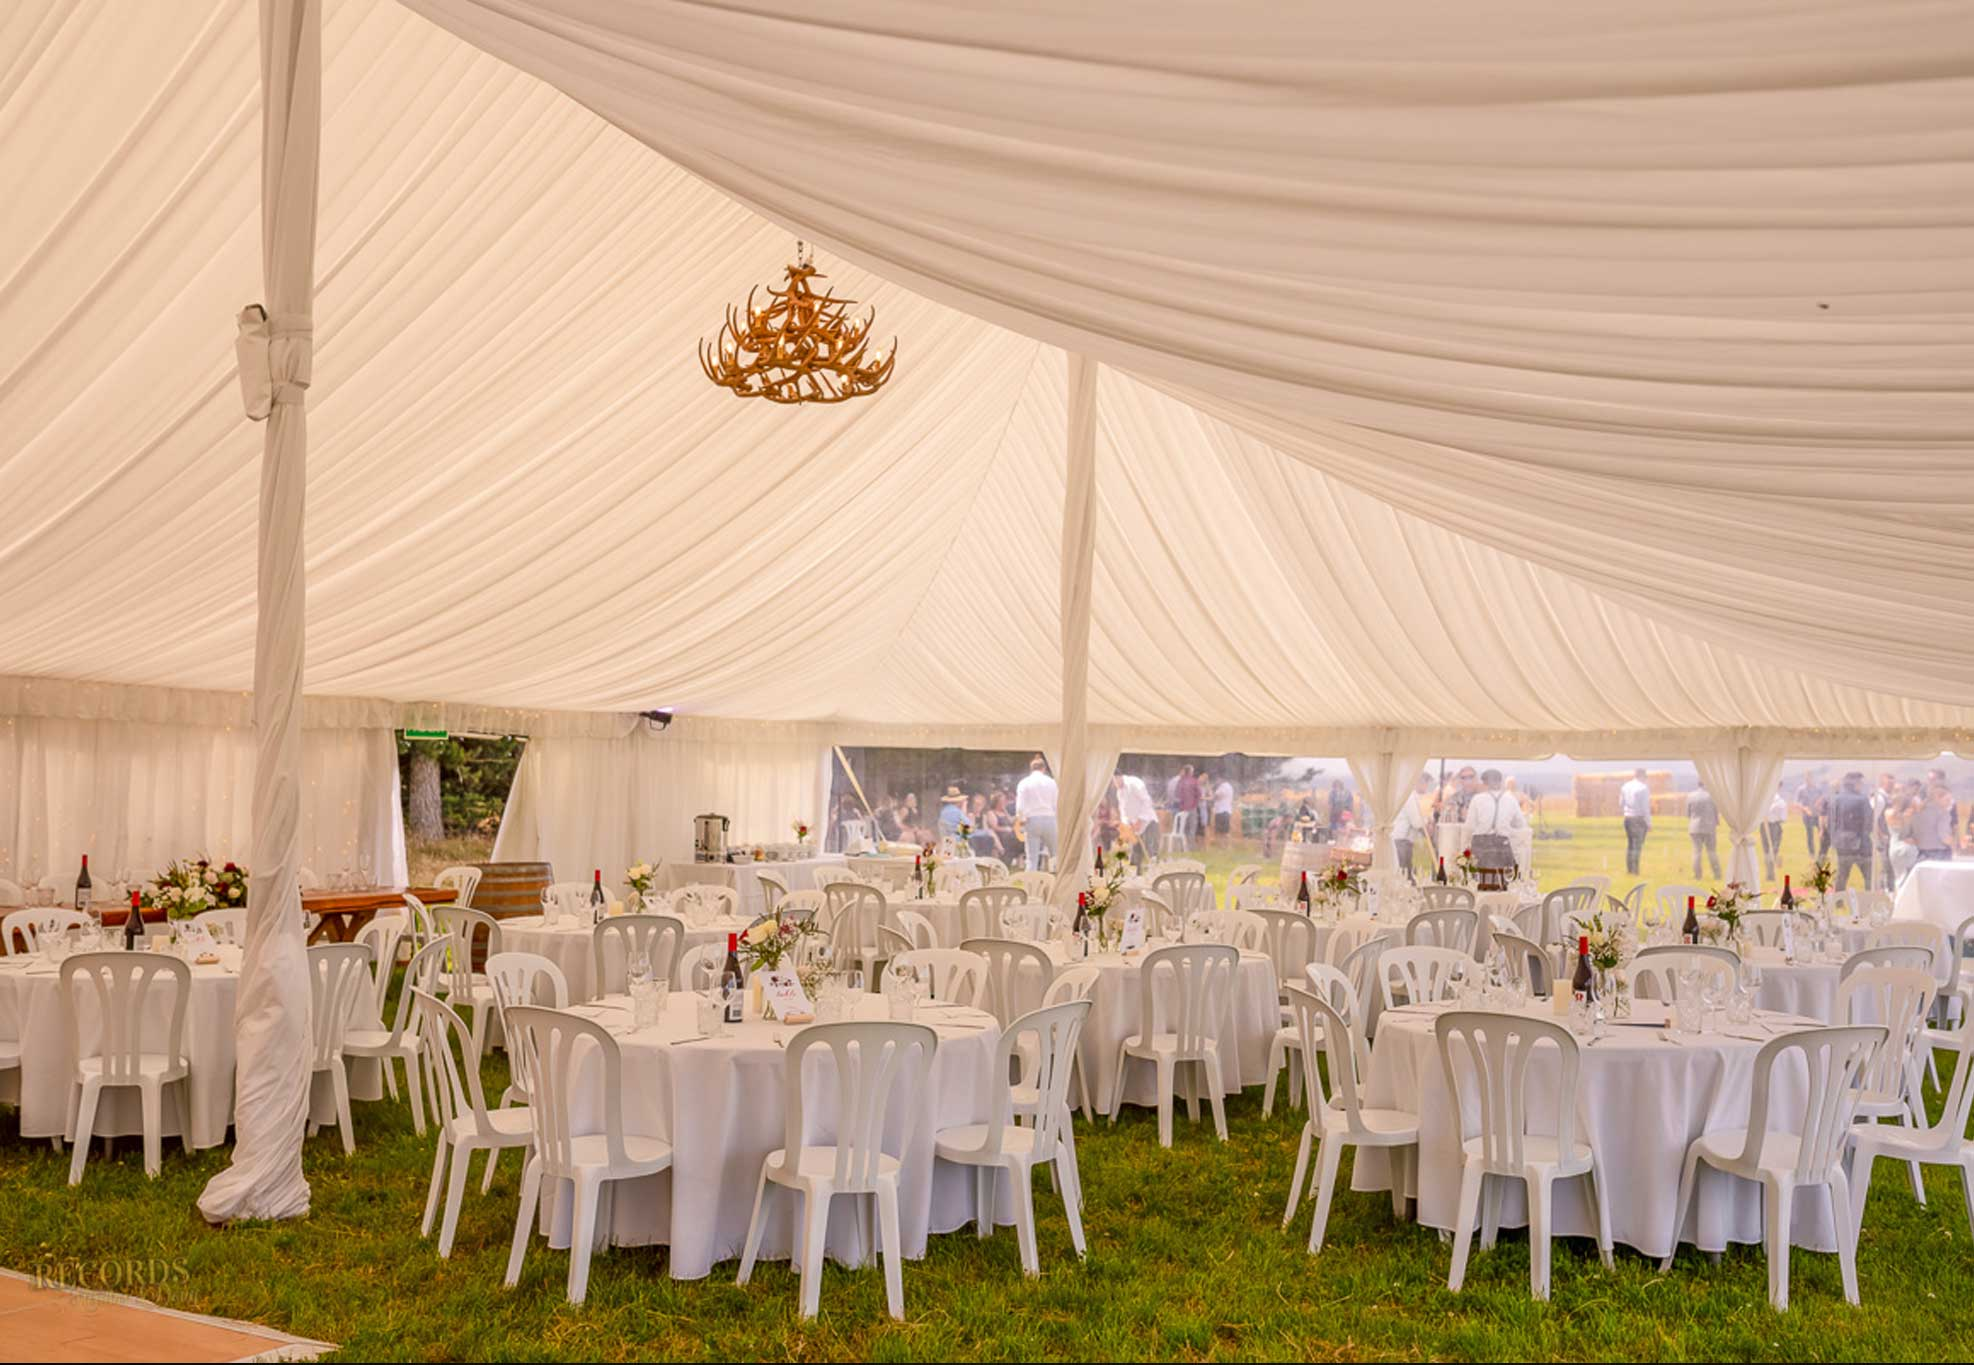 silk-estate-marquee-weddings-and-events-blog-reebecca-vincent-3